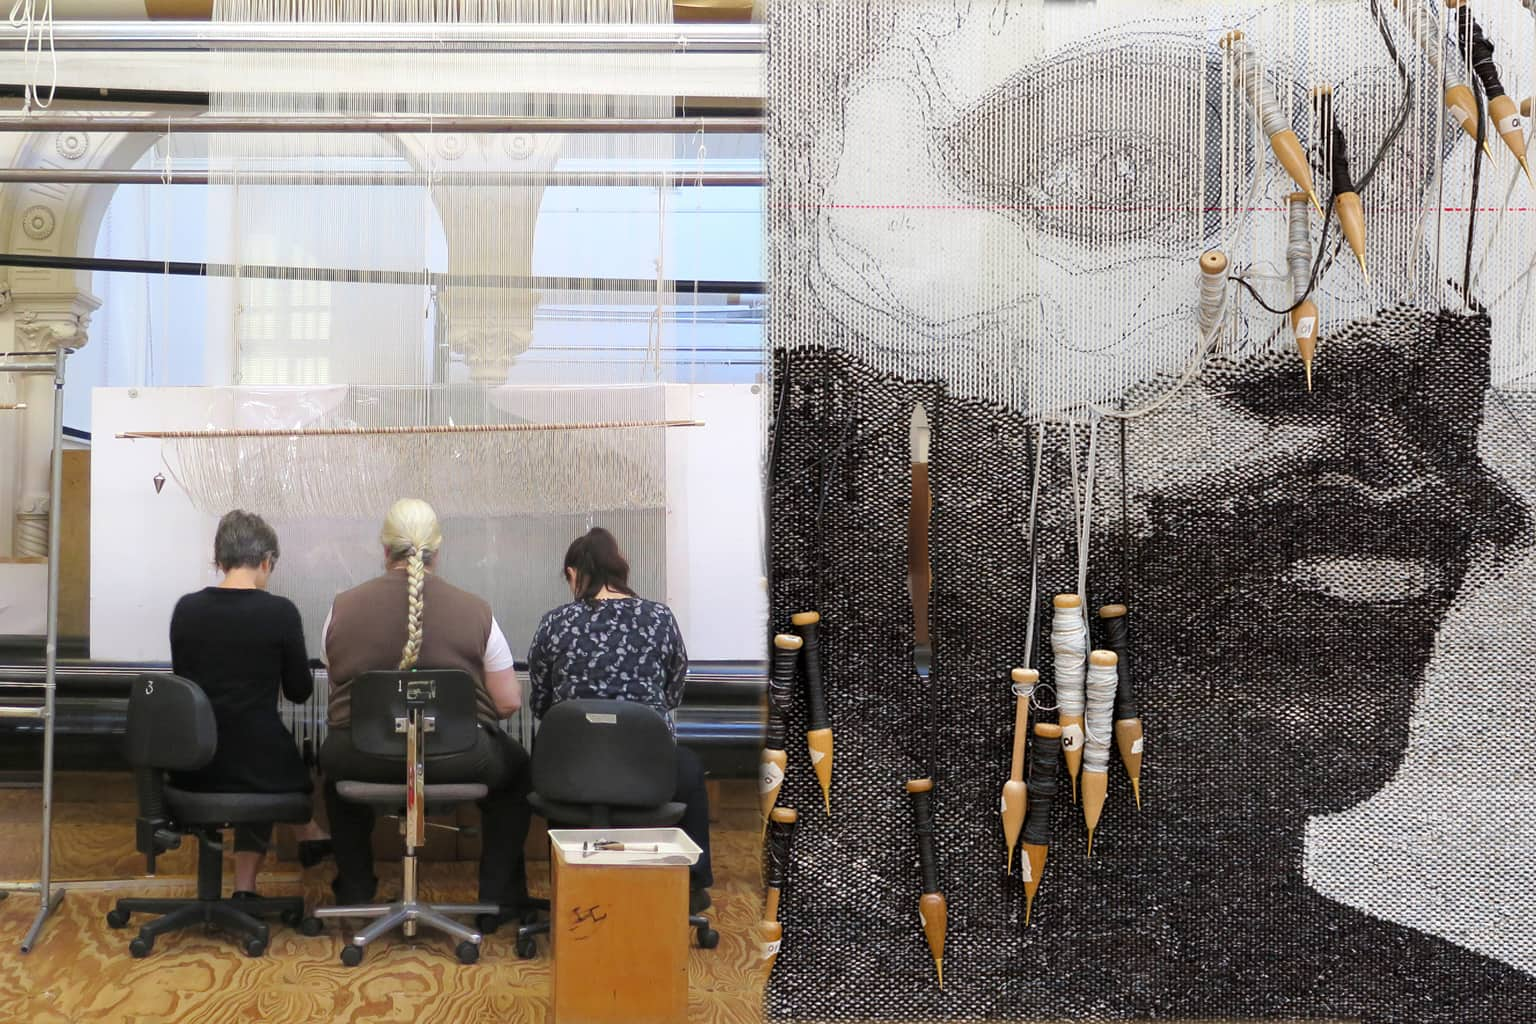 Left: ATW weavers working on 'Catching Breath' designed by Brook Andrew in 2014. Photograph: ATW. Right: Detail of 'Catching Breath' designed by Brook Andrew in 2014. Photograph: Jeremy Weihrauch.